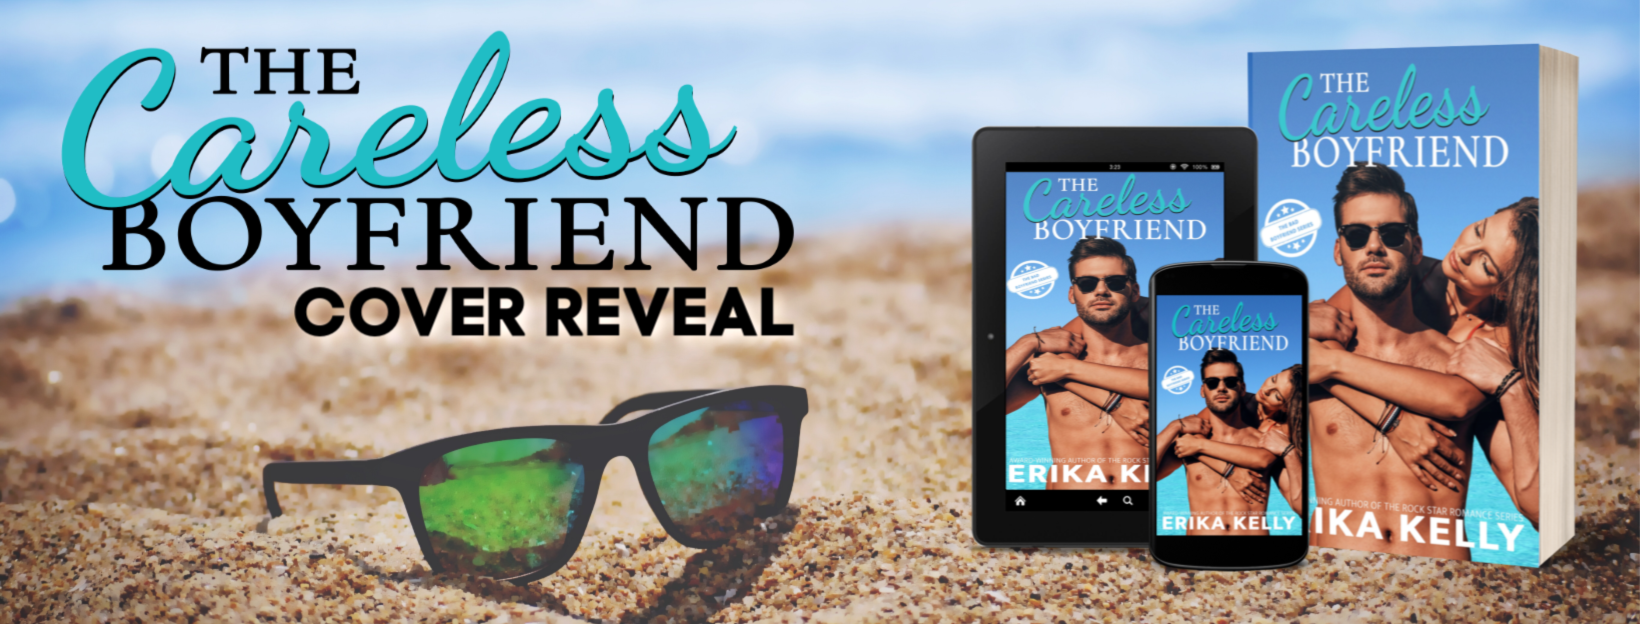 Erika Kelly's THE CARELESS BOYFRIEND – Cover Reveal